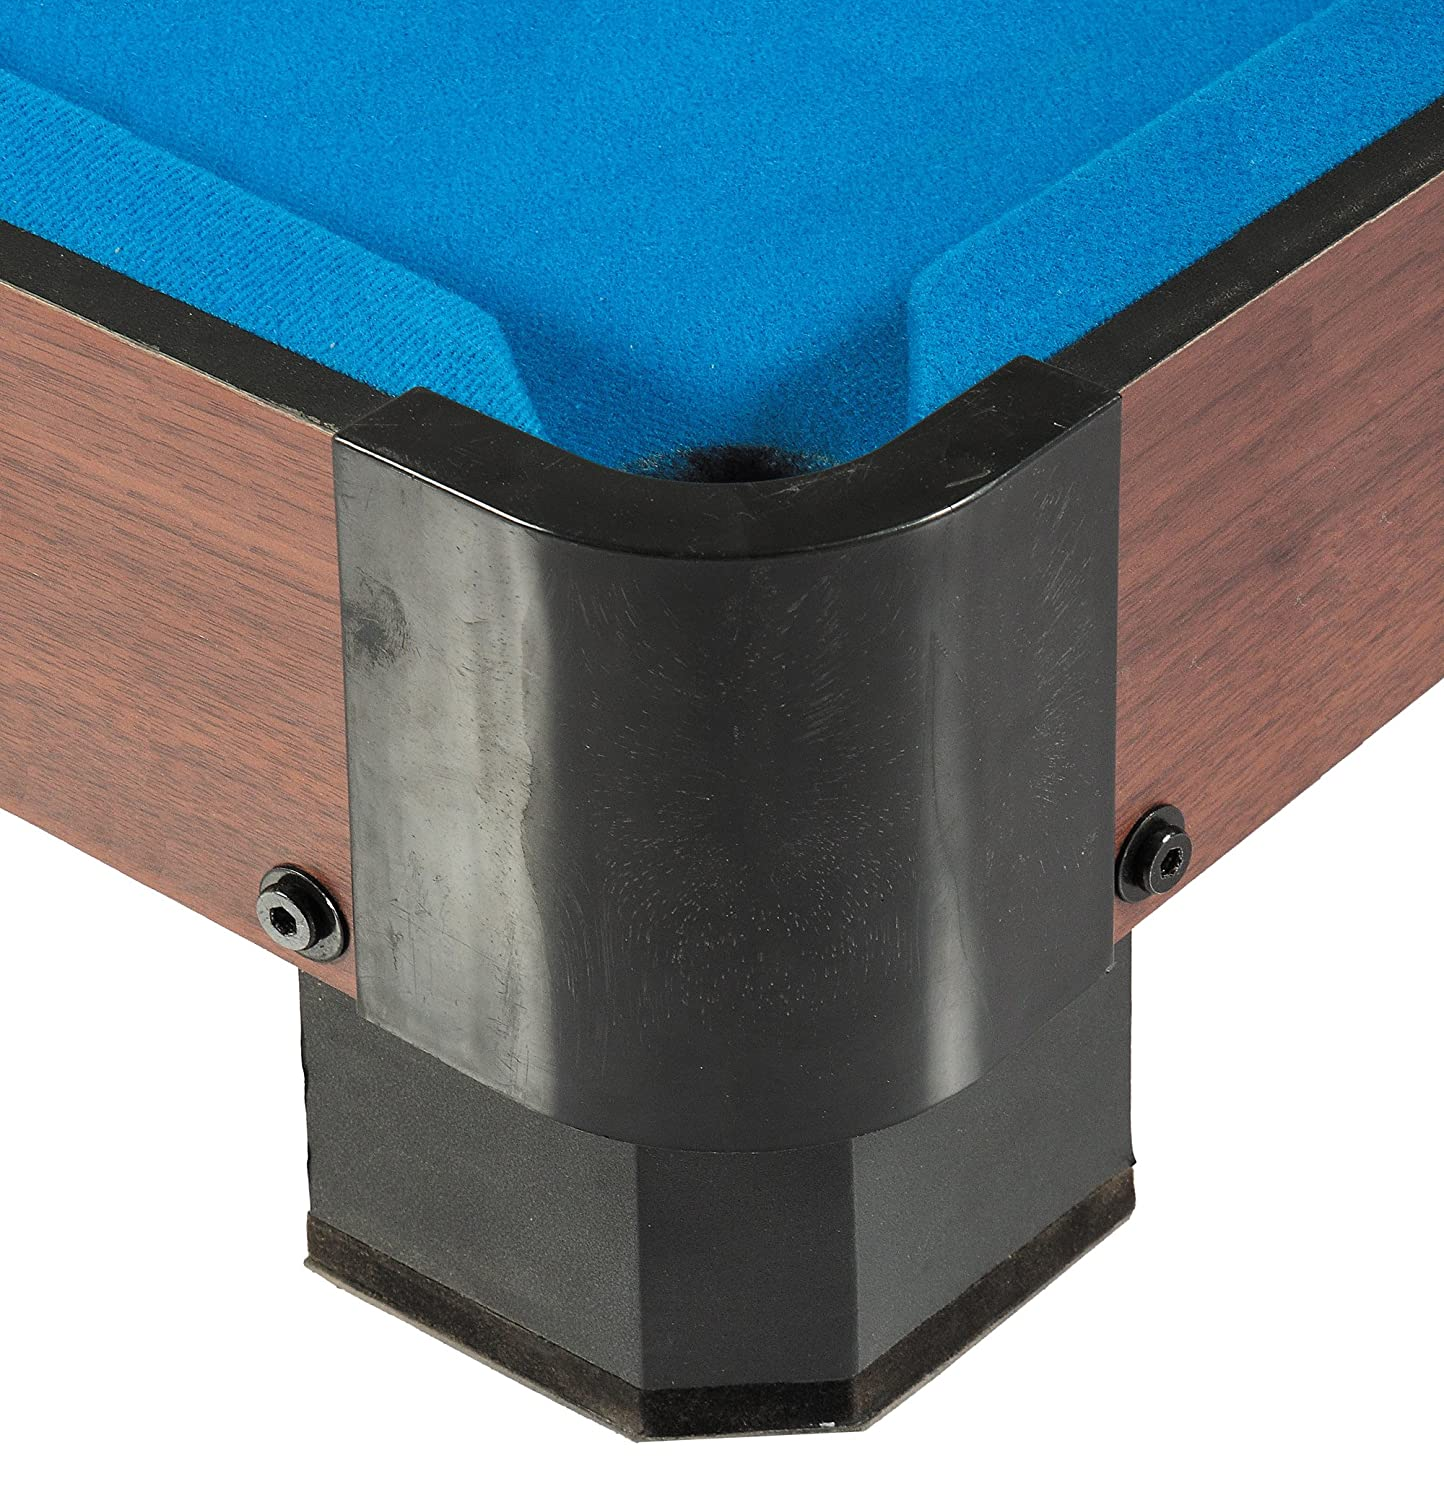 Amazoncom Hathaway Sharp Shooter Pool Table Blue Inch - L shaped pool table